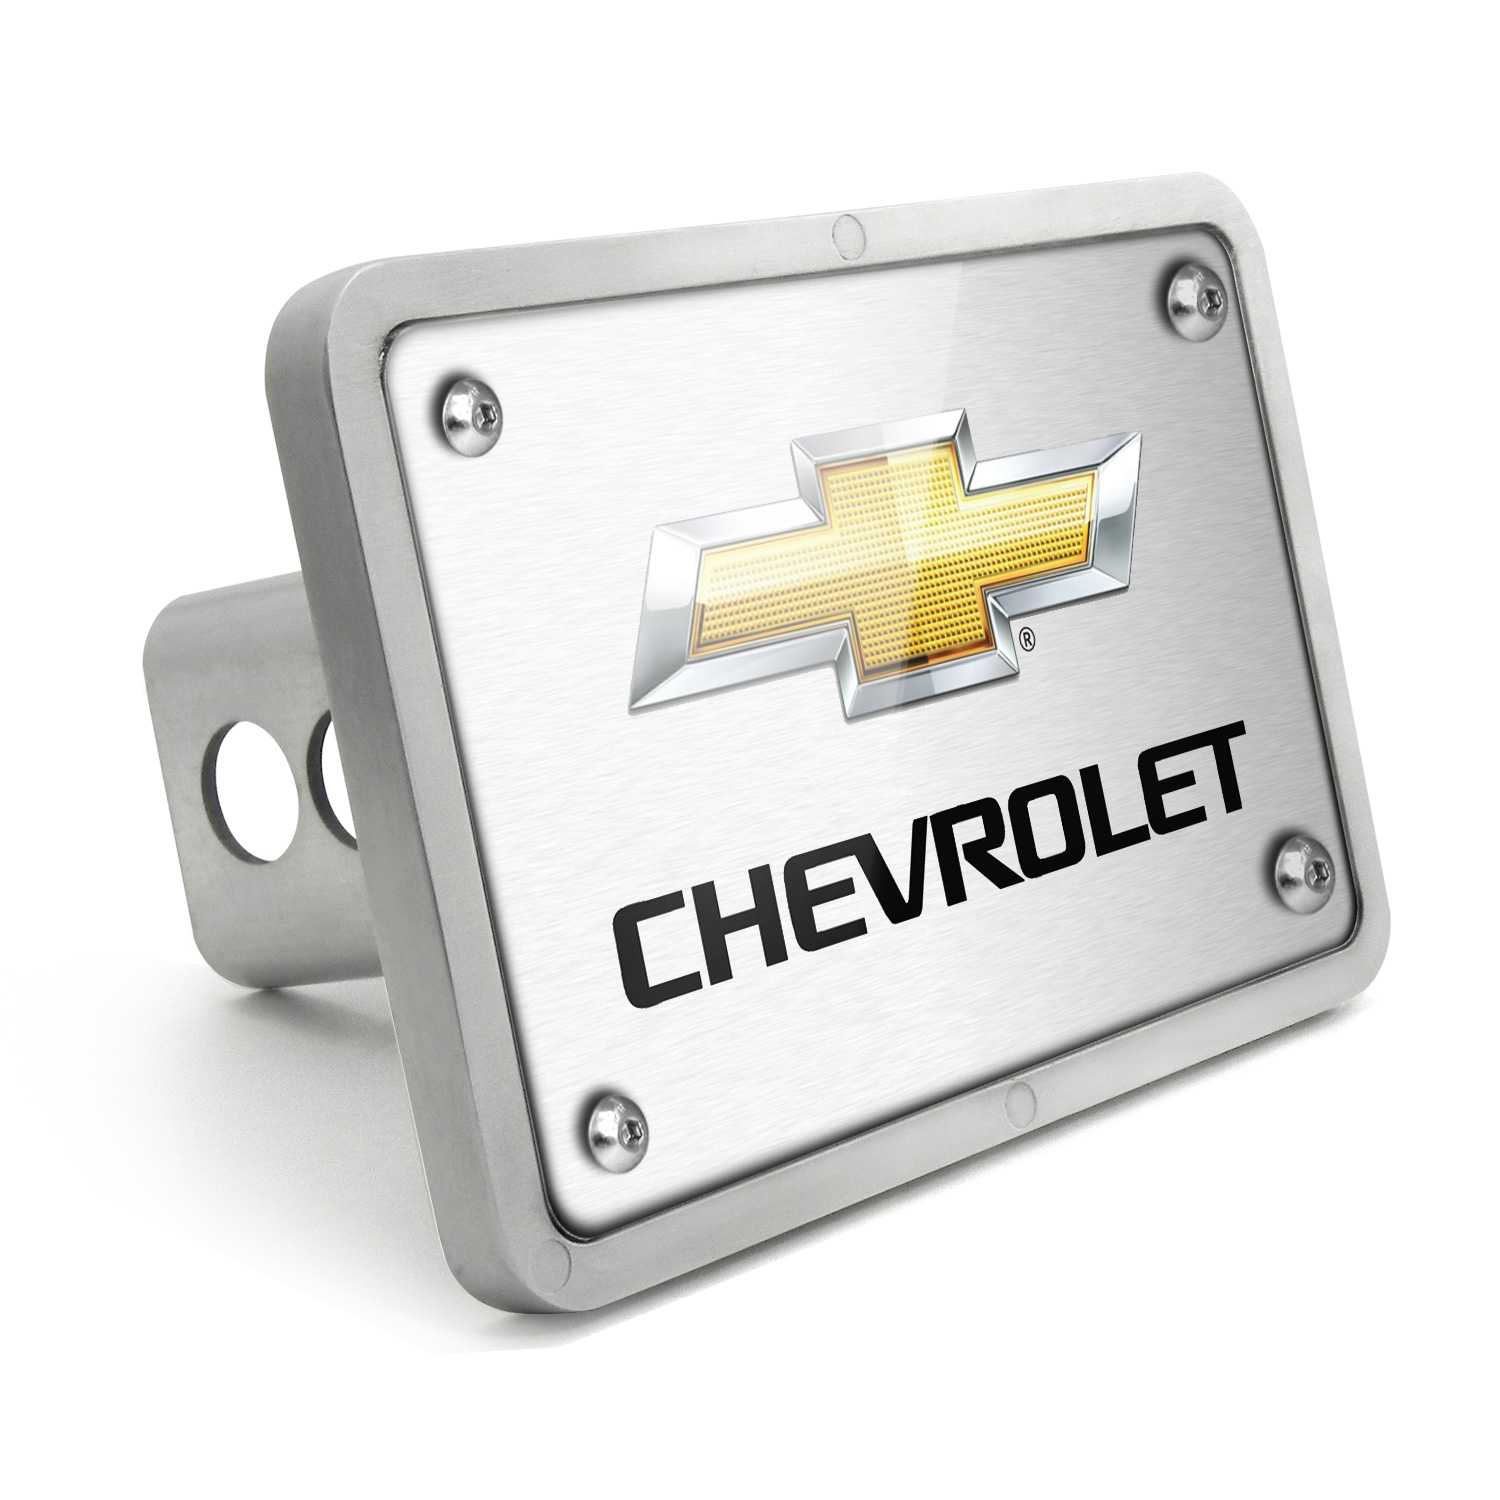 Chevrolet Logo 2011 UV Graphic Brushed Silver Billet Aluminum 2 inch Tow Hitch Cover